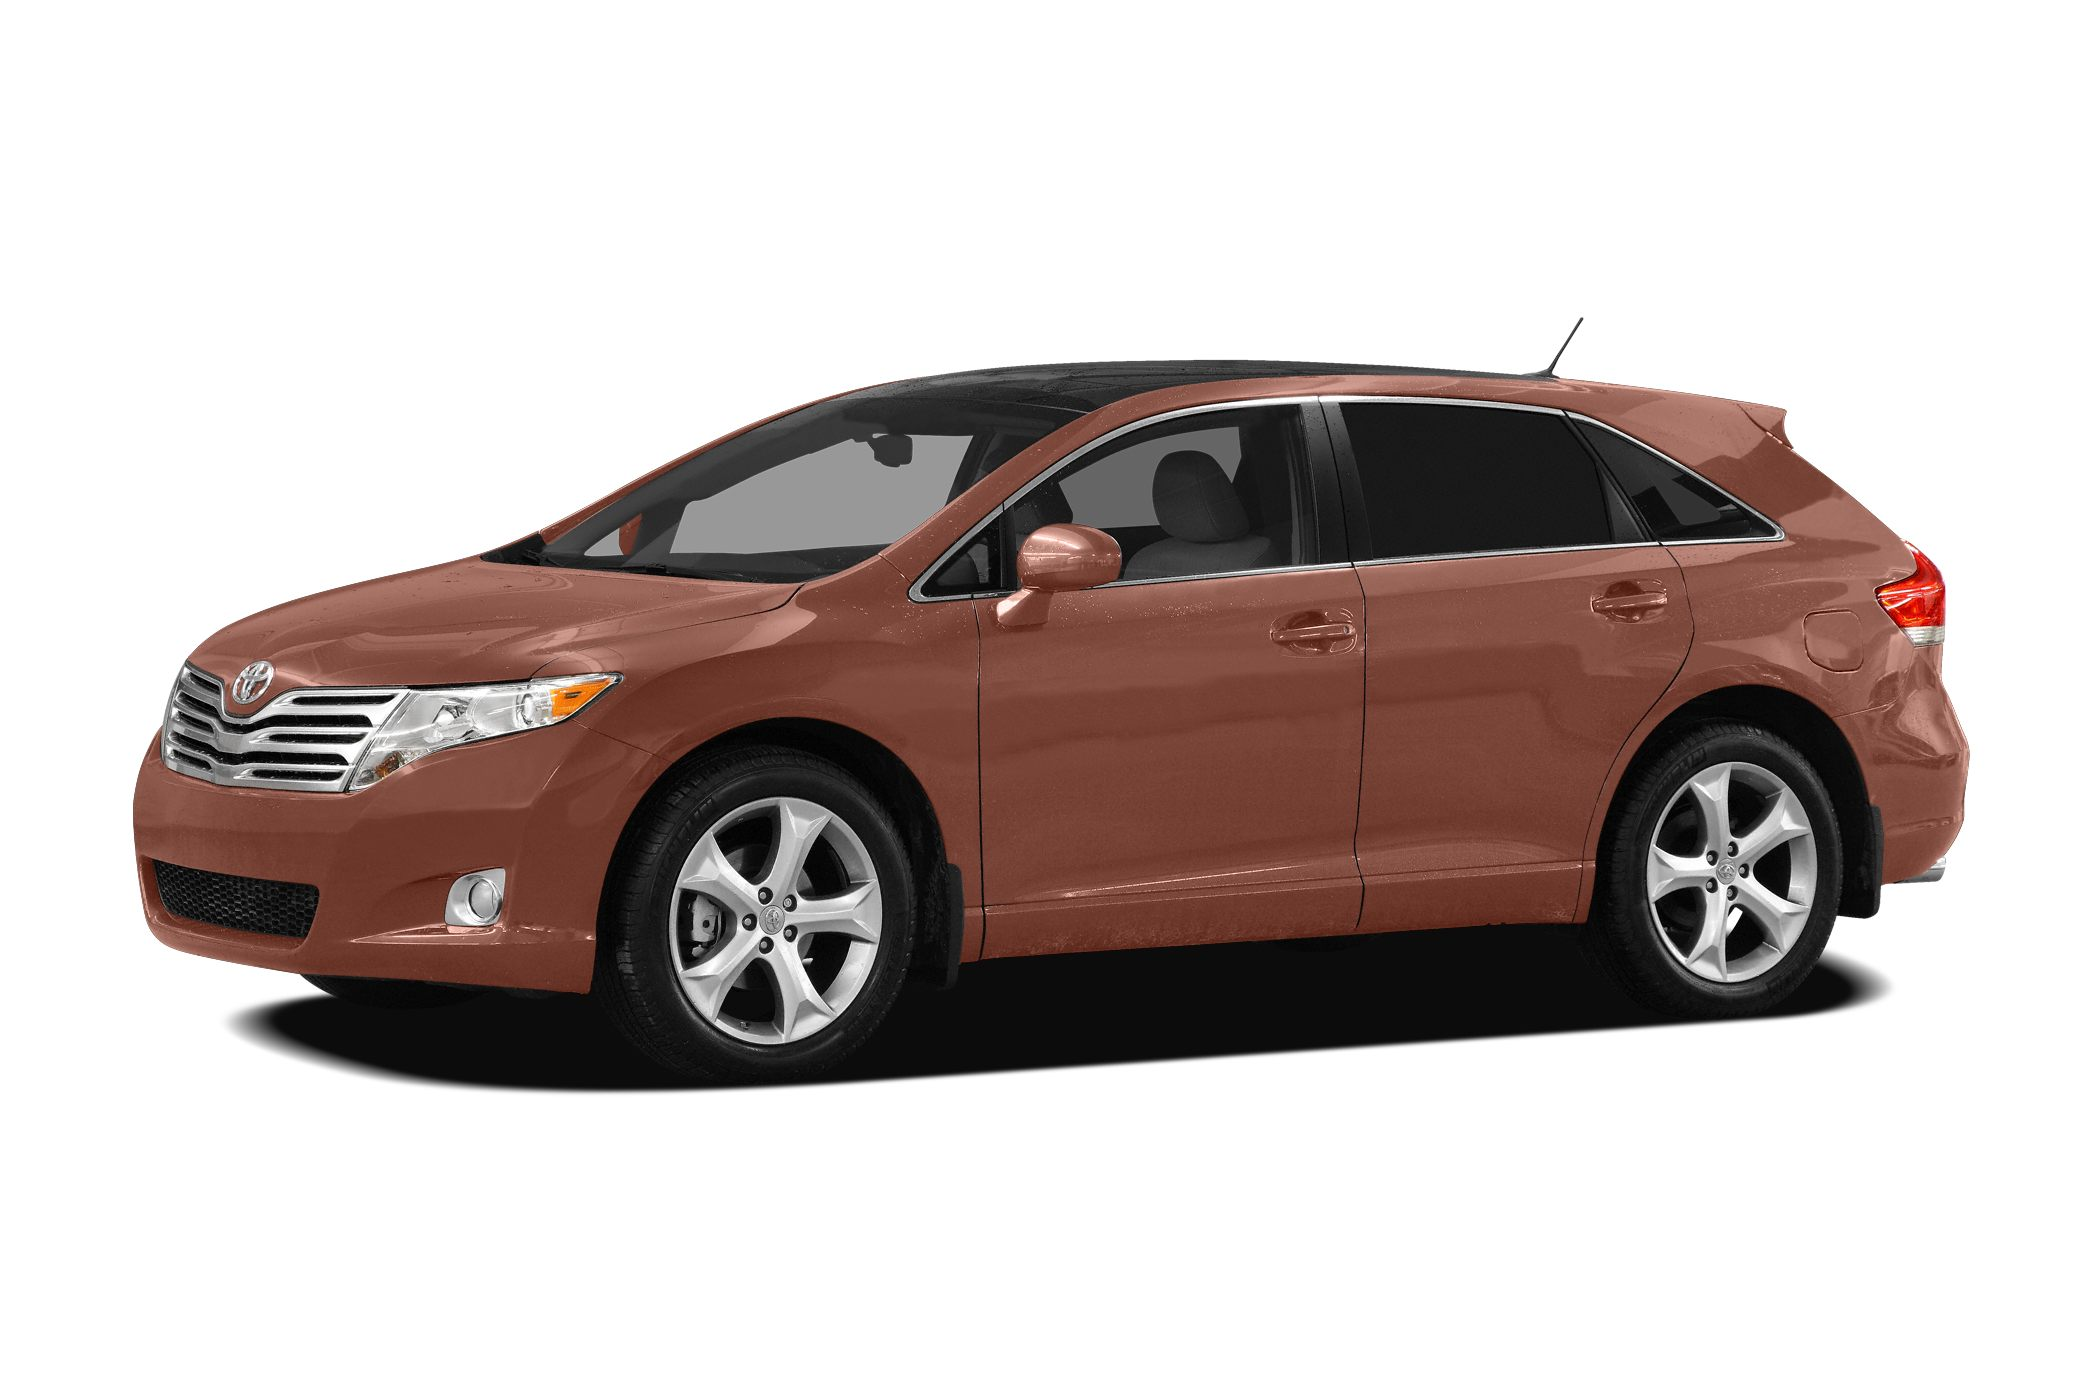 2009 Toyota Venza SUV for sale in Clinton for $17,963 with 64,111 miles